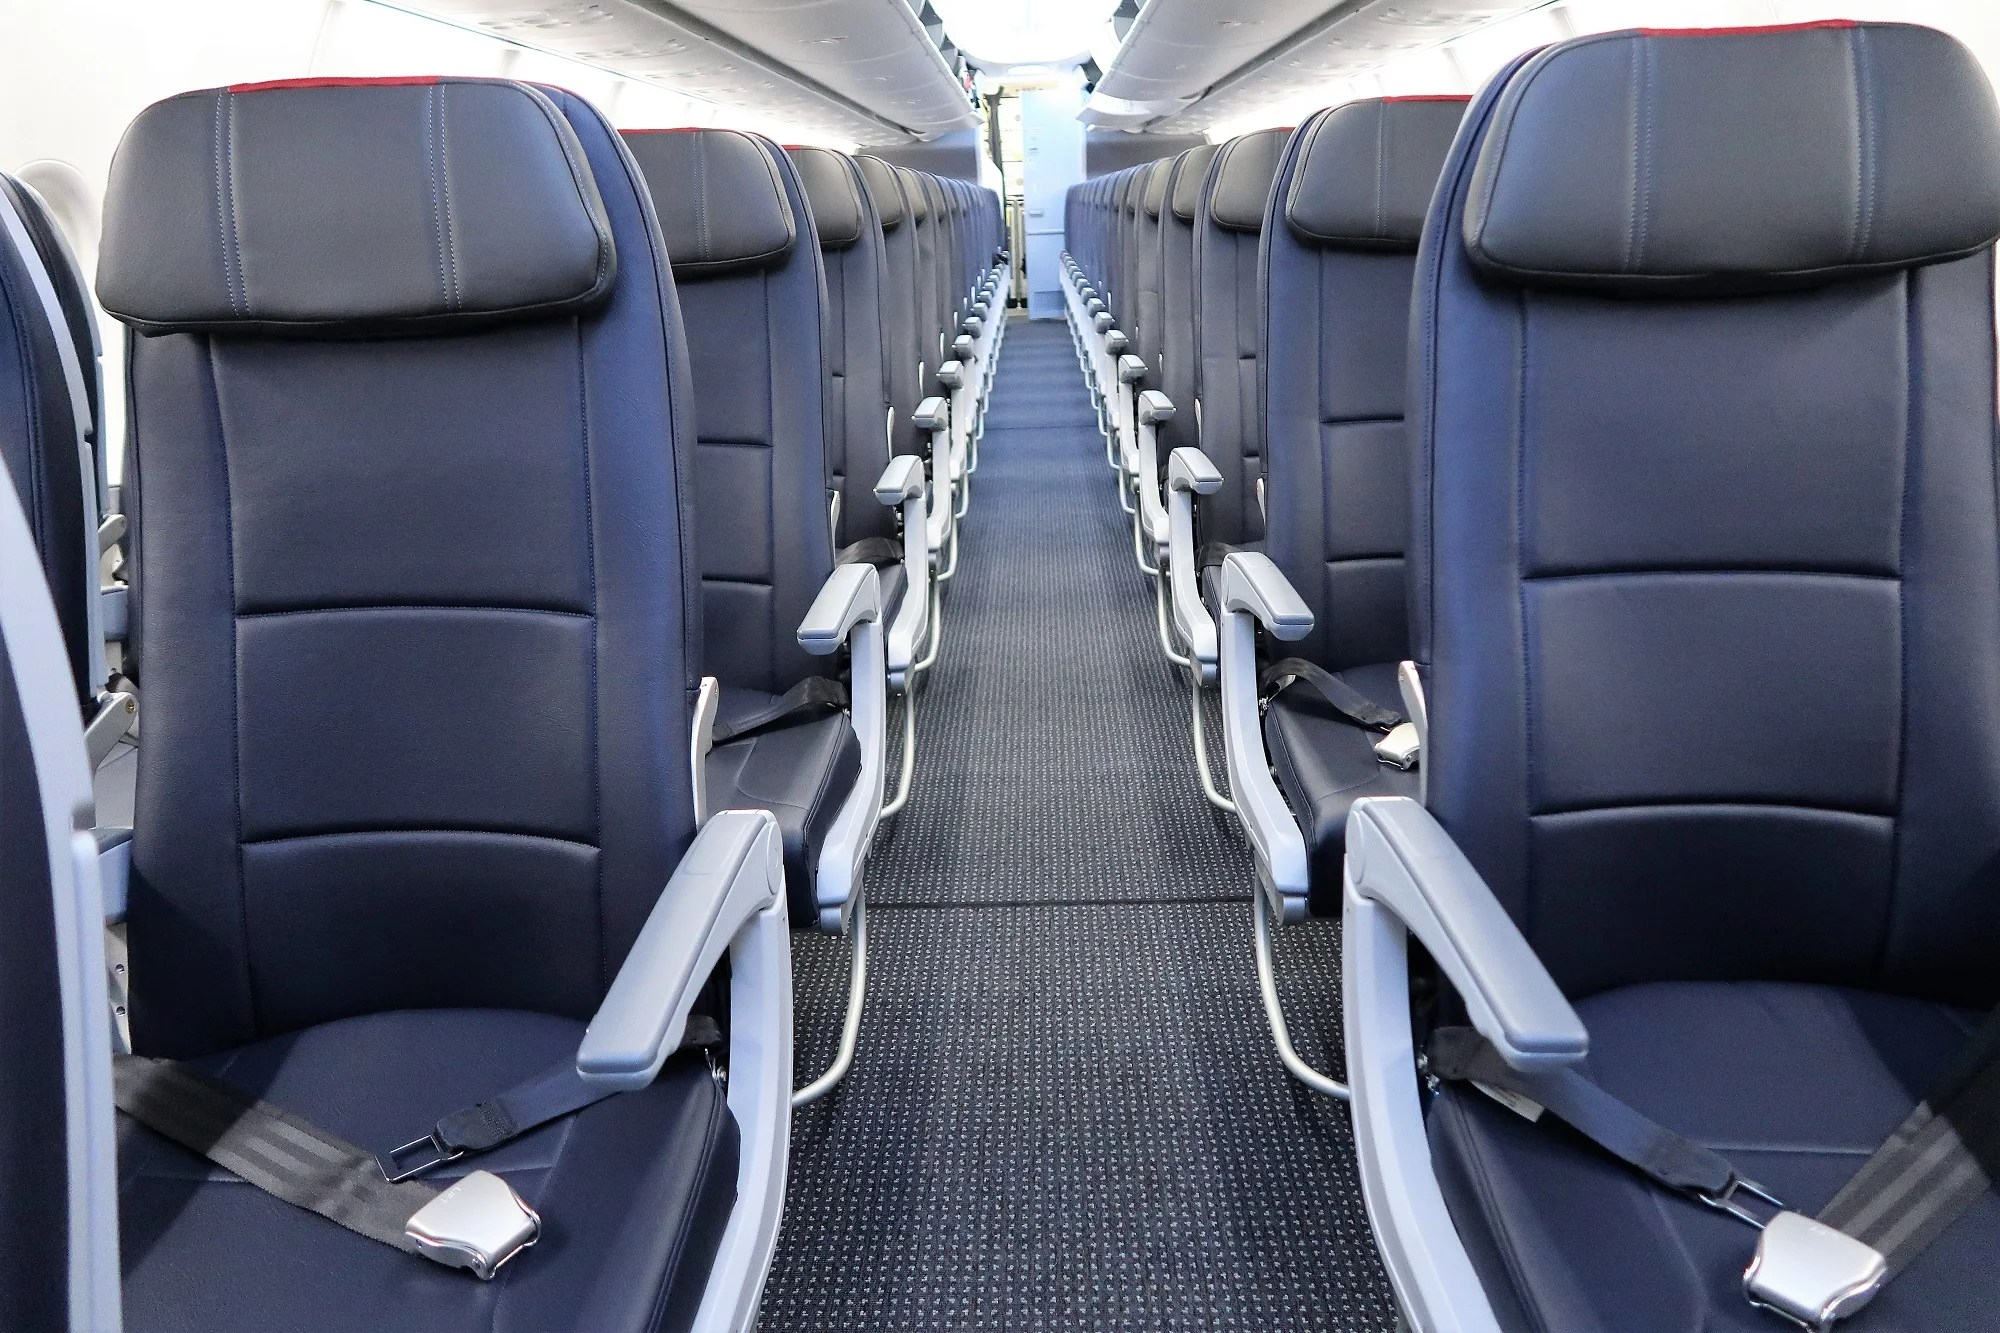 A First Look Inside American Airlines' Boeing 737 MAX 8